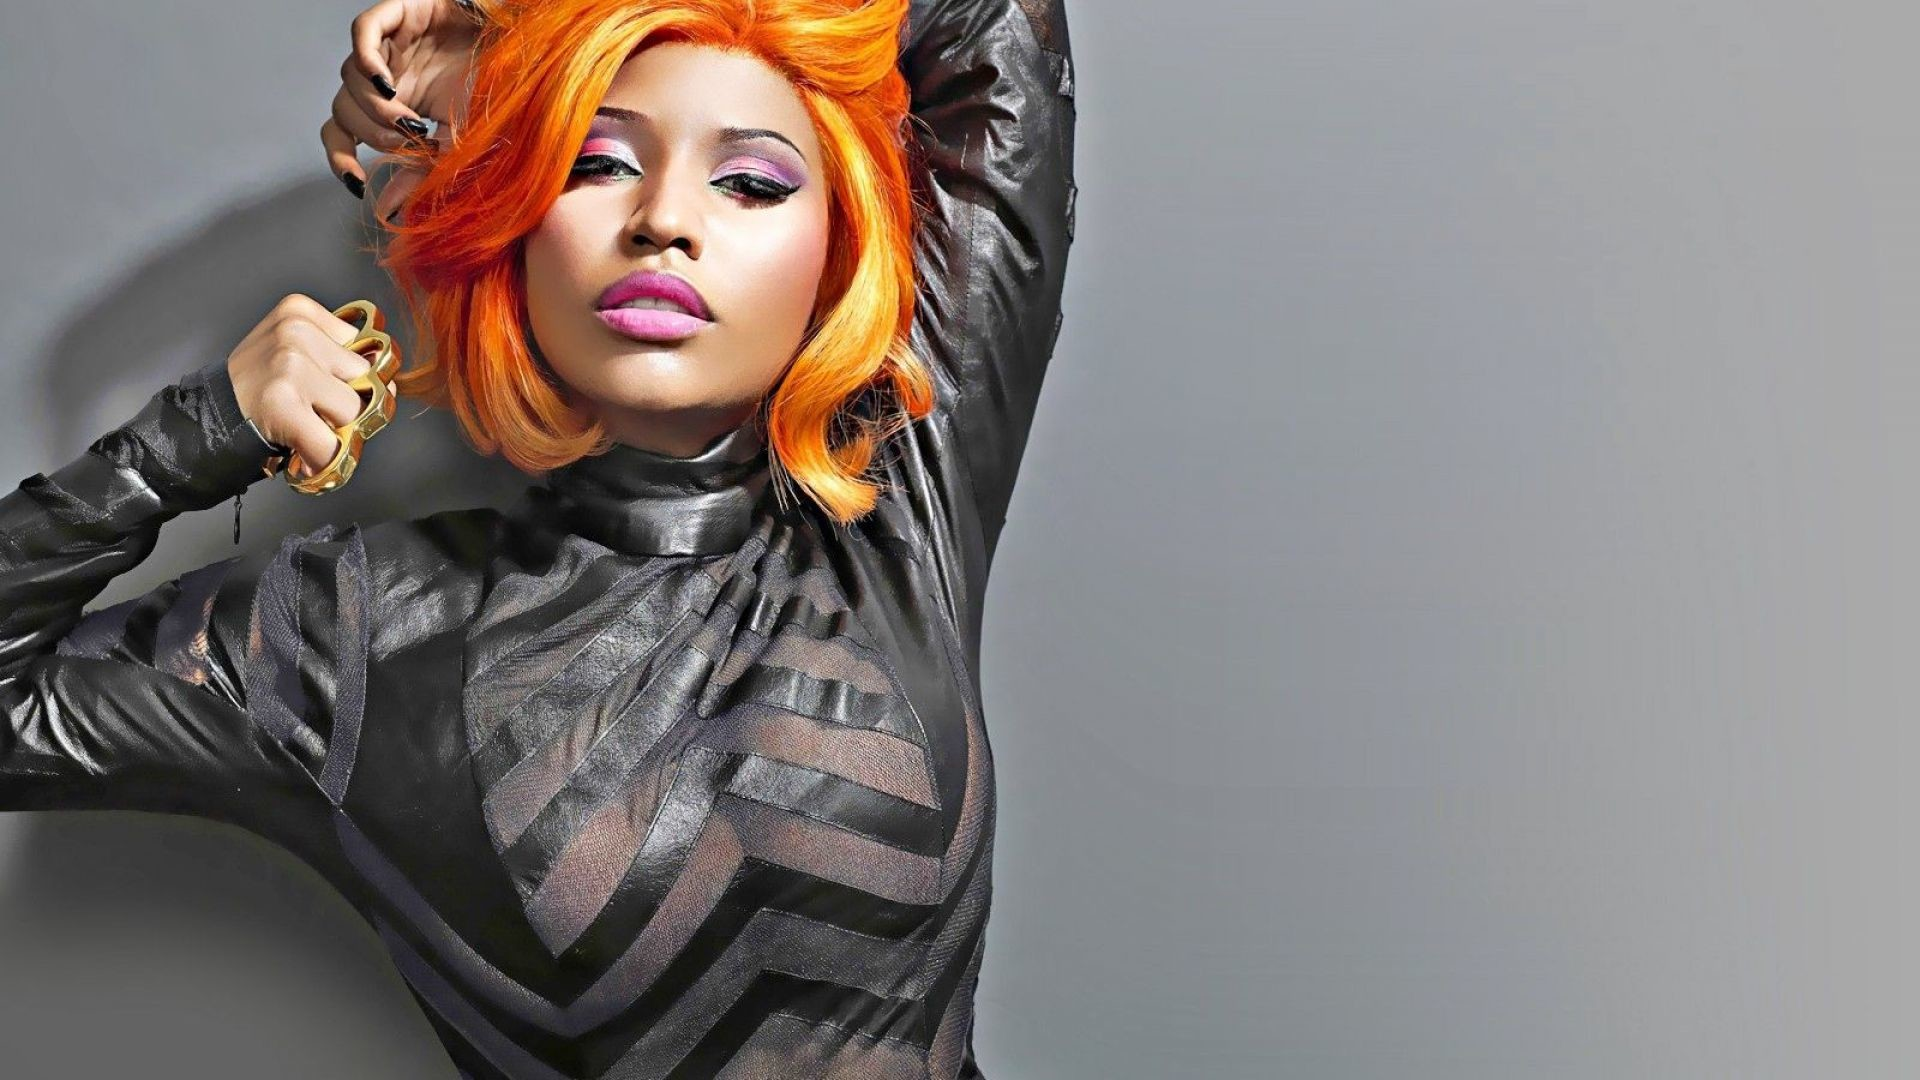 Nicki Minaj Wallpapers 65 Images